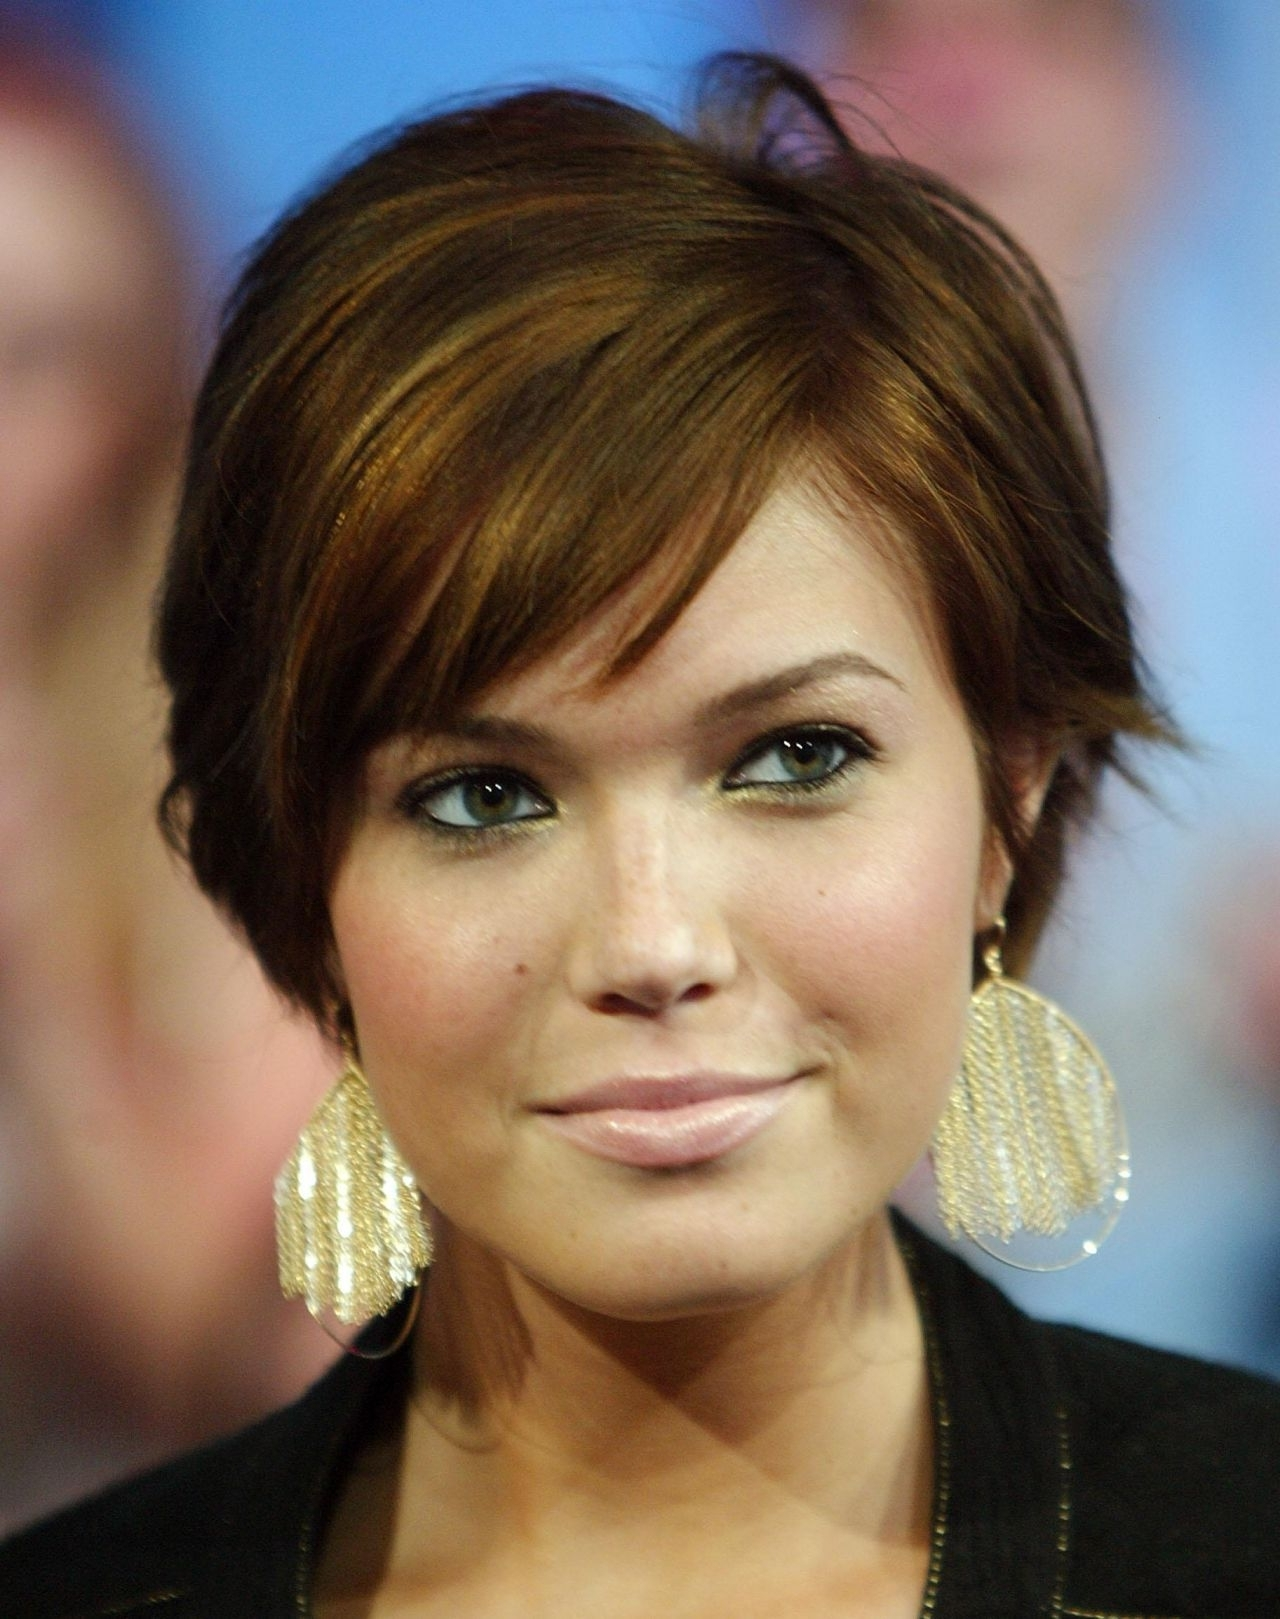 Short Haircut Round Face Hairstyle For Women | Short Hairstyles Inside Most Popular Pixie Hairstyles For Chubby Faces (View 11 of 15)